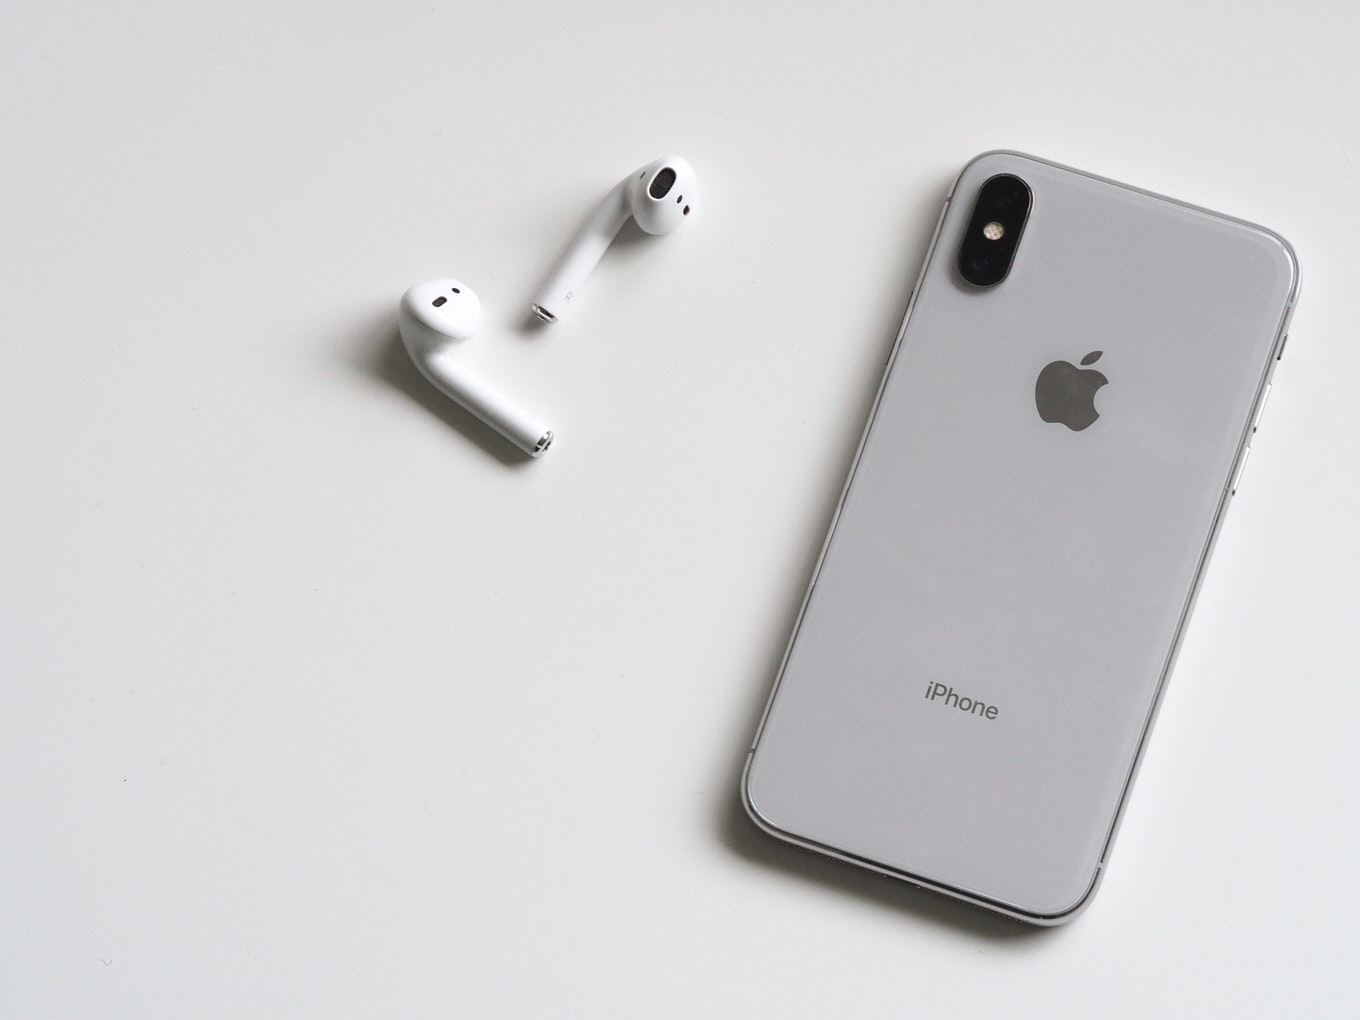 airpods-apple-device-cellphone-788946